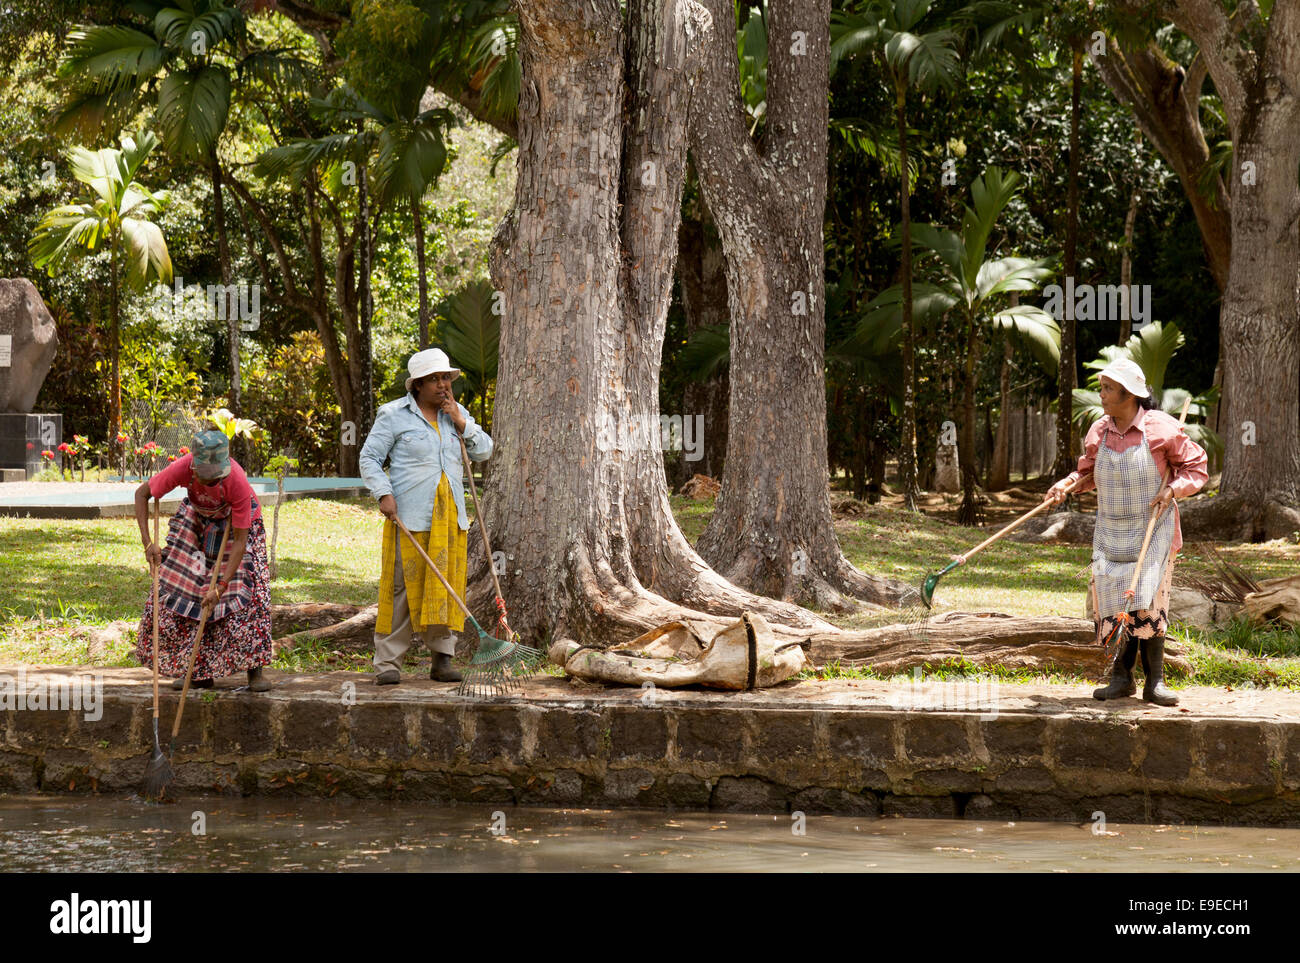 Local Women Working In The Botanical Gardens, Cleaning The Algae Out Of The  Lily Ponds, Mauritius